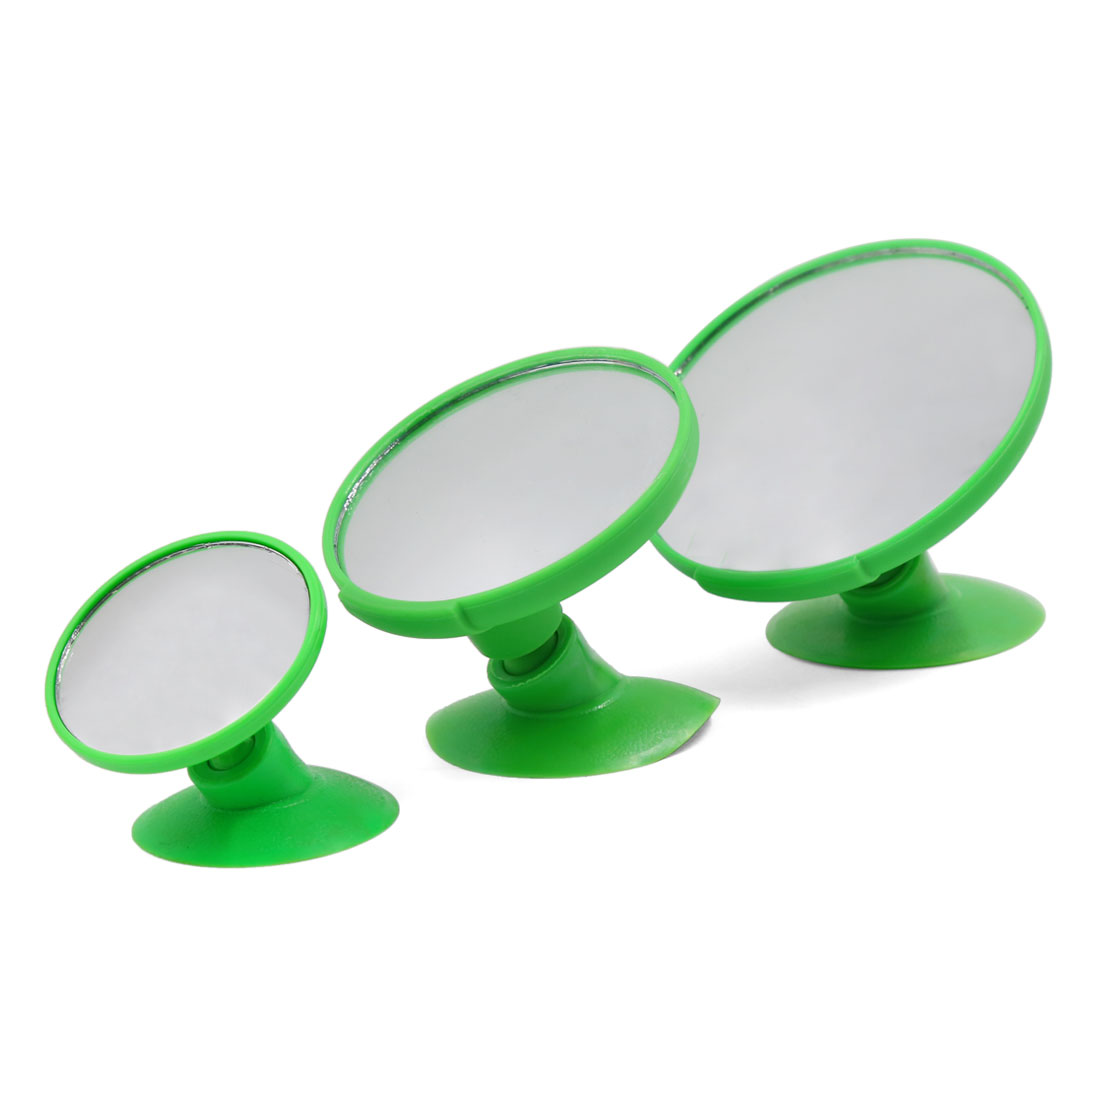 Universal Car Green Shell Wide Angle Convex Blind Spot Rearview Mirror 3 Pcs